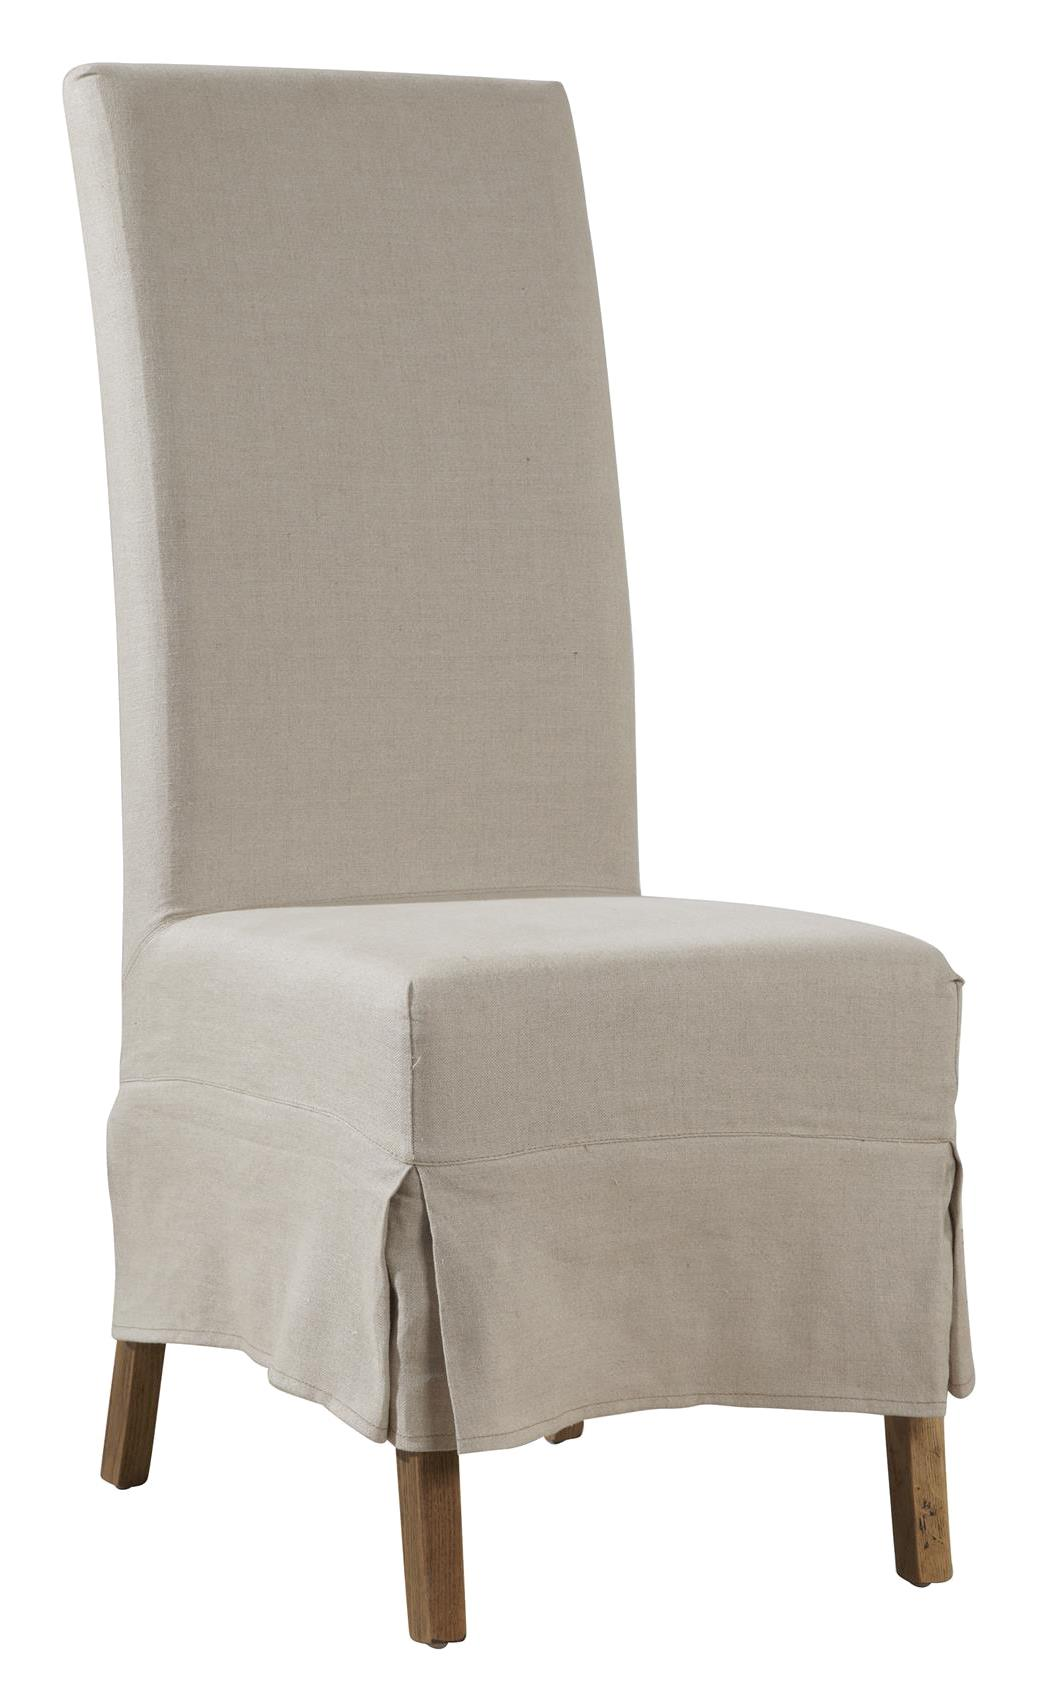 Furniture Classics Accents Linen Slip Covered Parsons Chair - Item Number: 70018